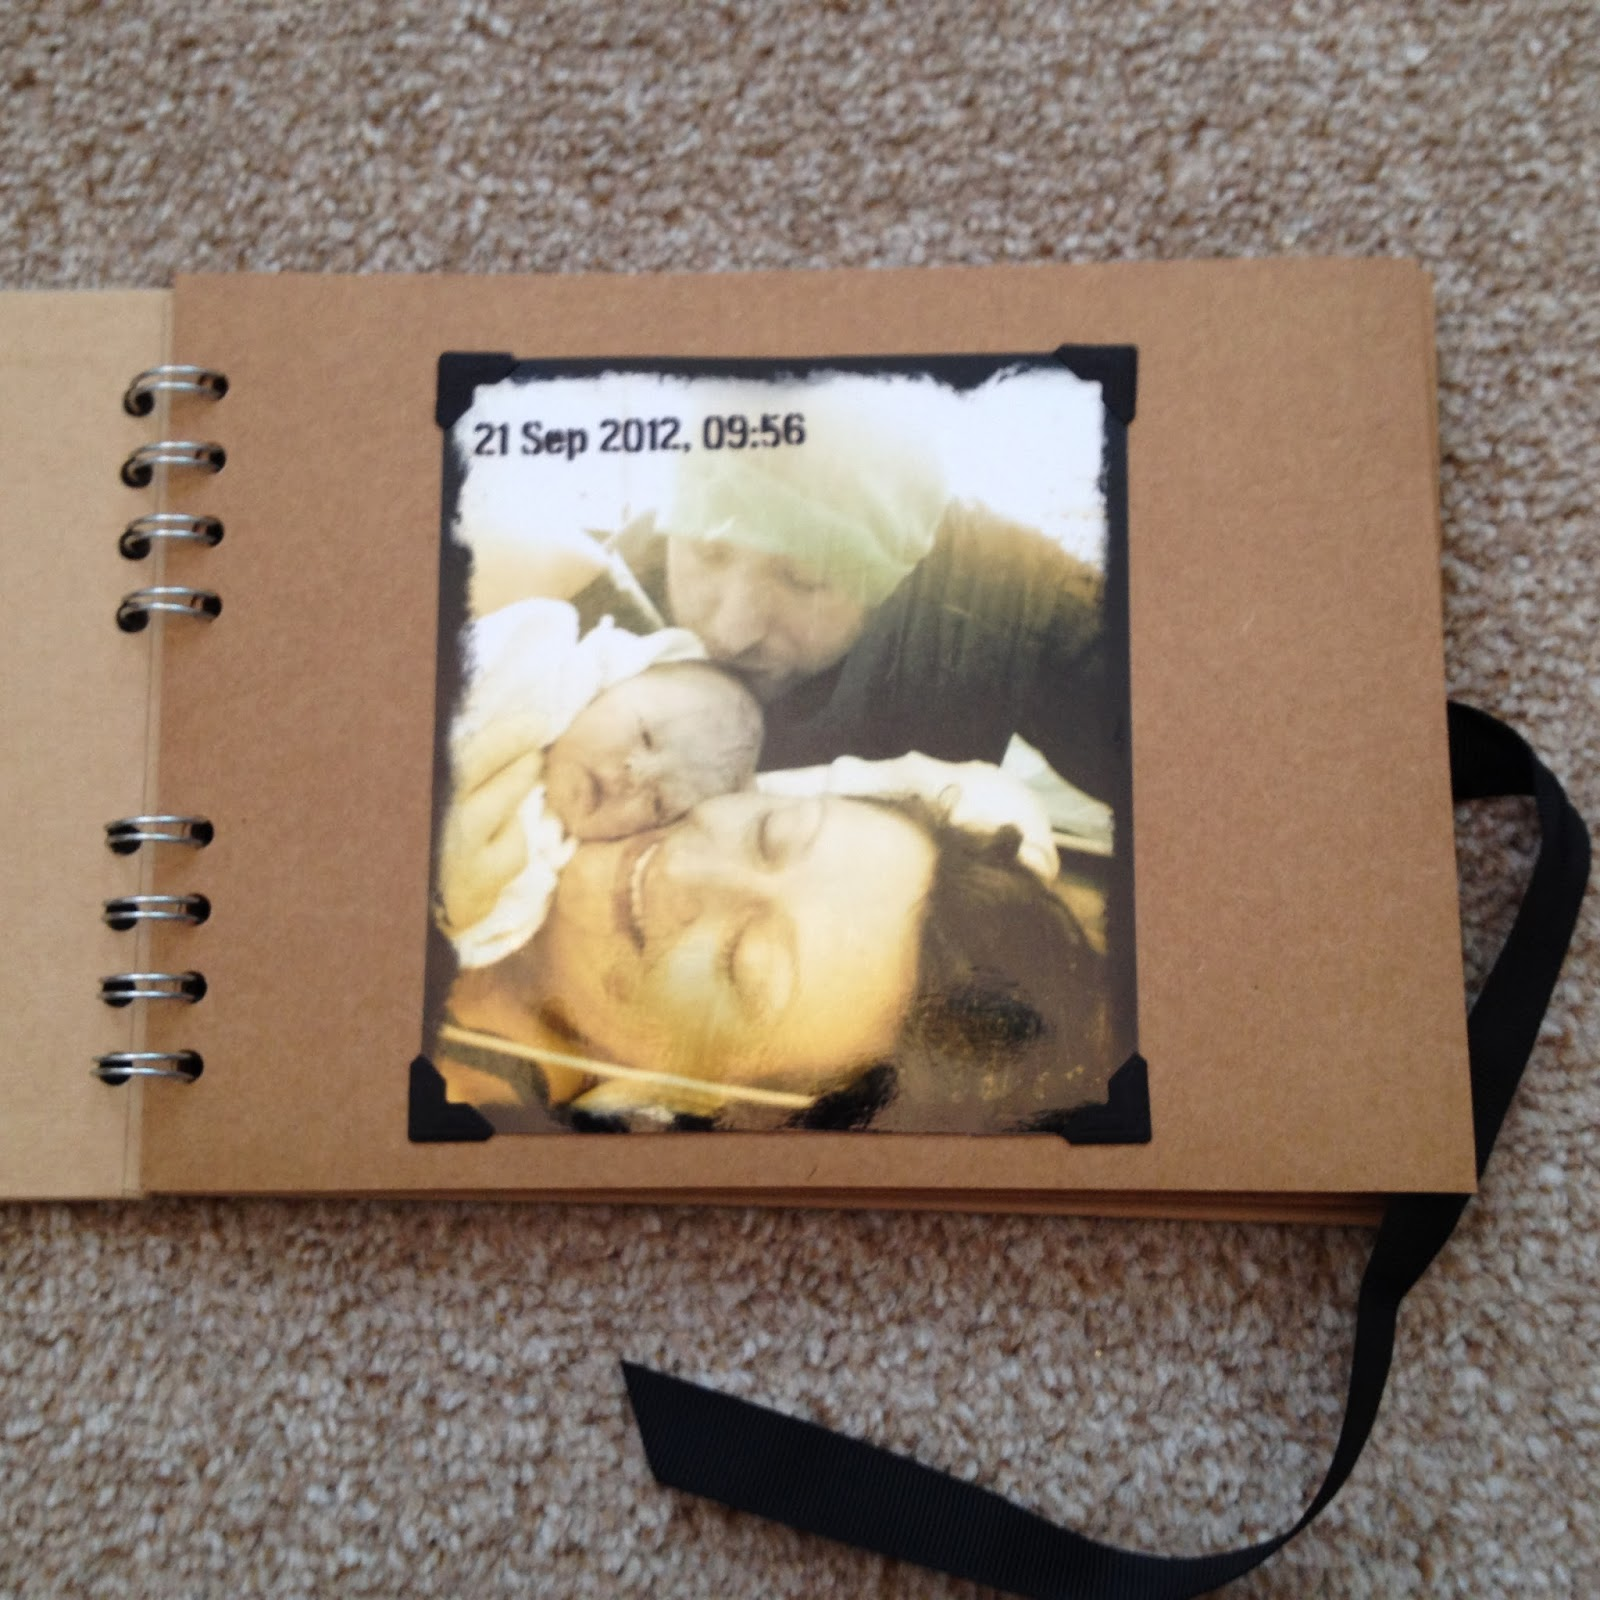 Scrapbook ideas cheap - Mamasvib V I Busy Bees A Scrapbook Photograph Idea For Time Pressed Mamas That